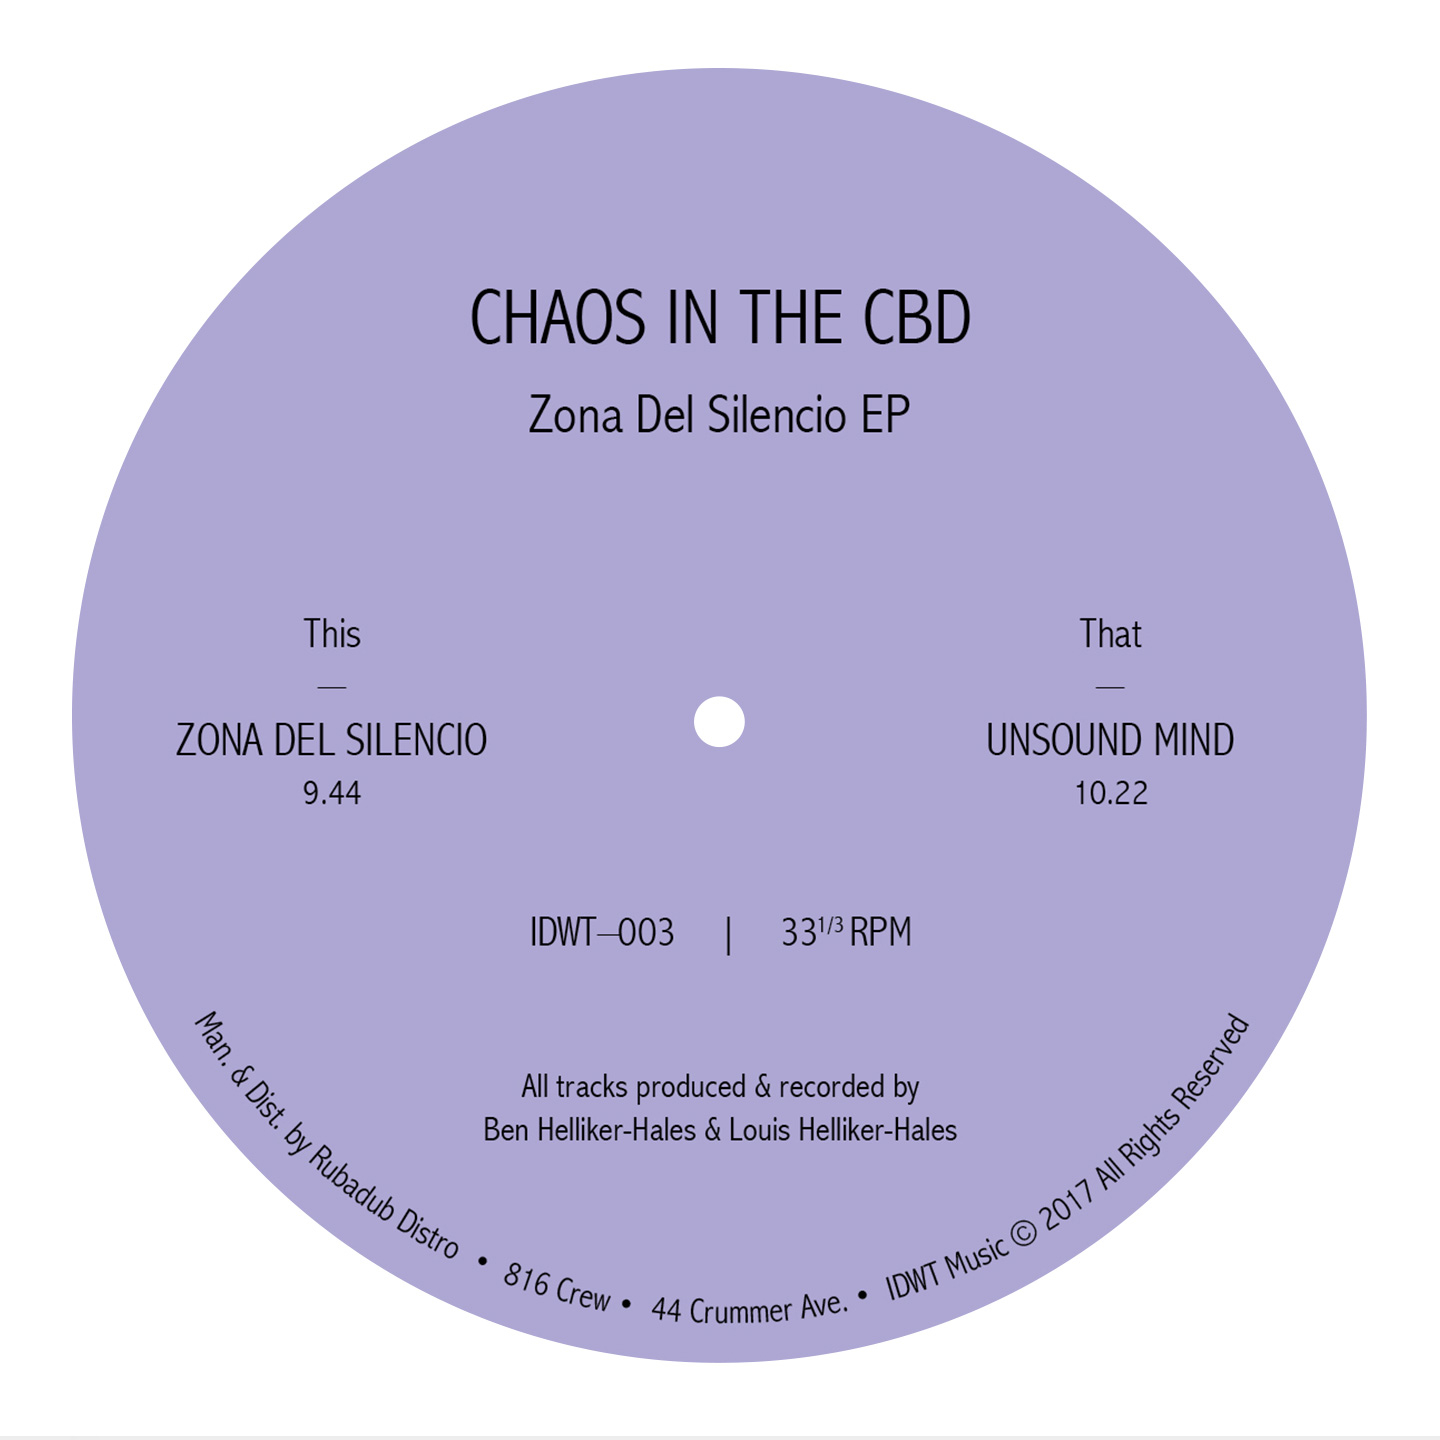 Chaos In The CBD - Zona Del Silencio EP